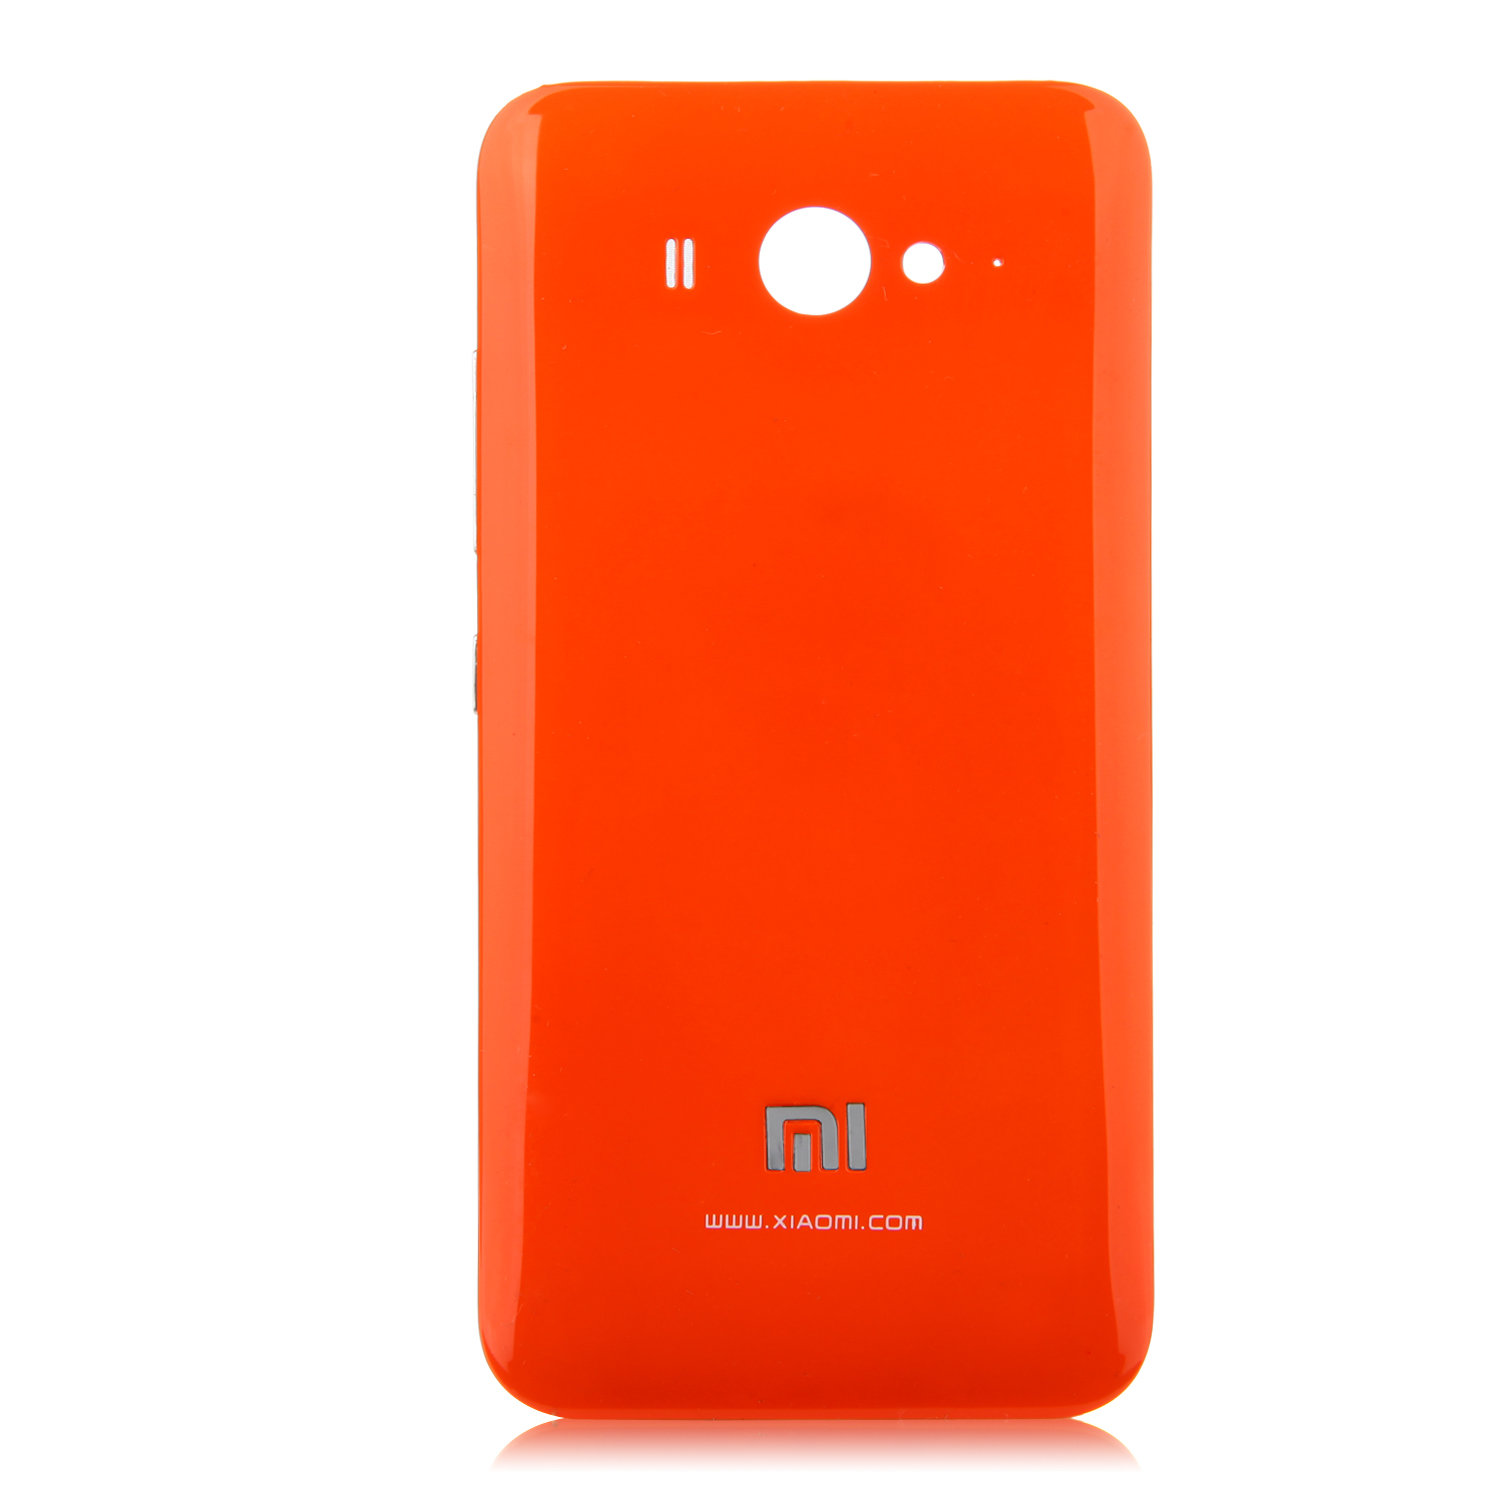 Replacement Battery Cover Back Case for XIAOMI 2S Smartphone Orange